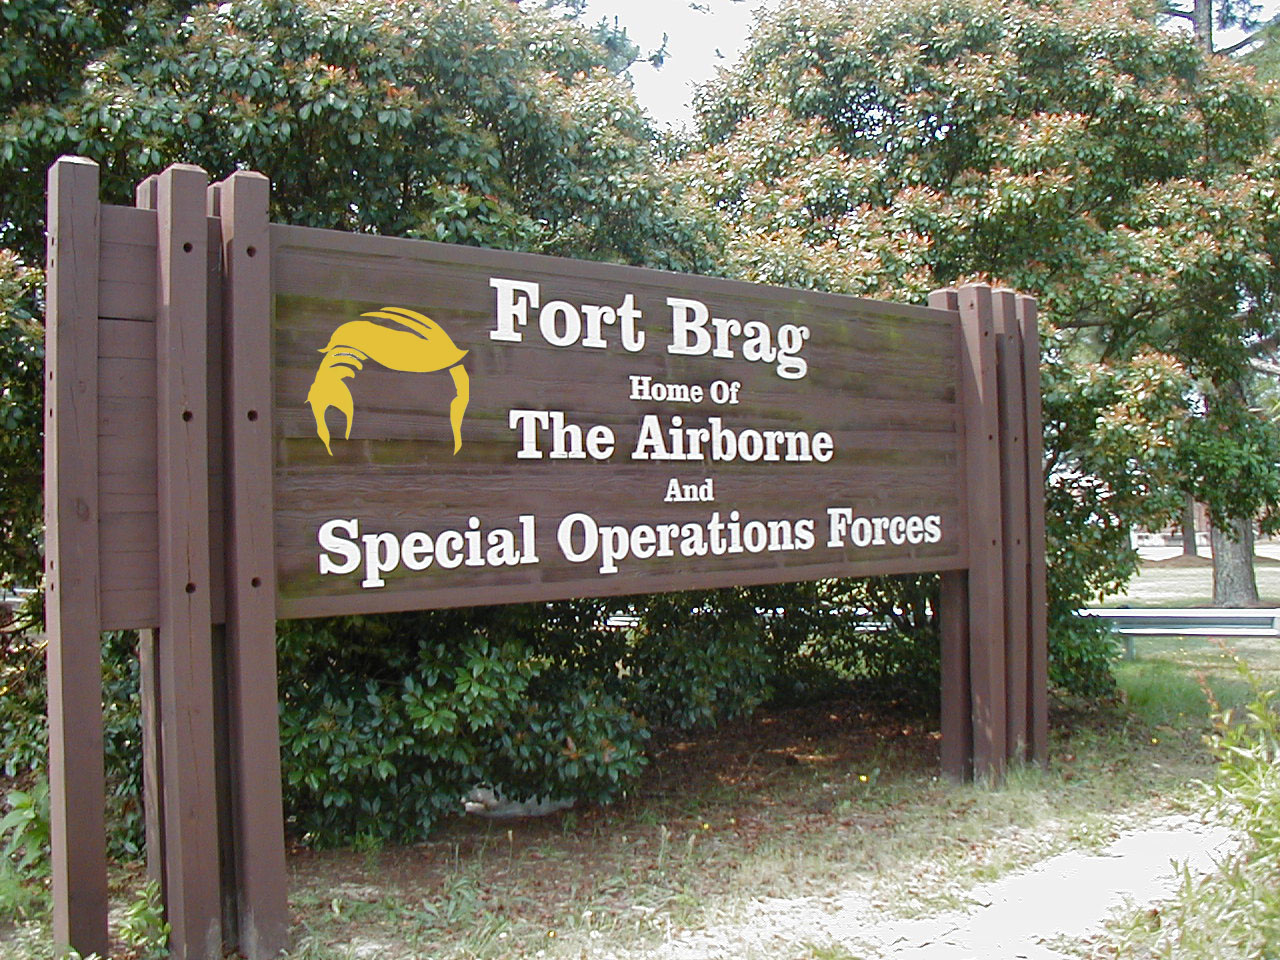 G Removed from Fort Brag in Honor of Donald Trump